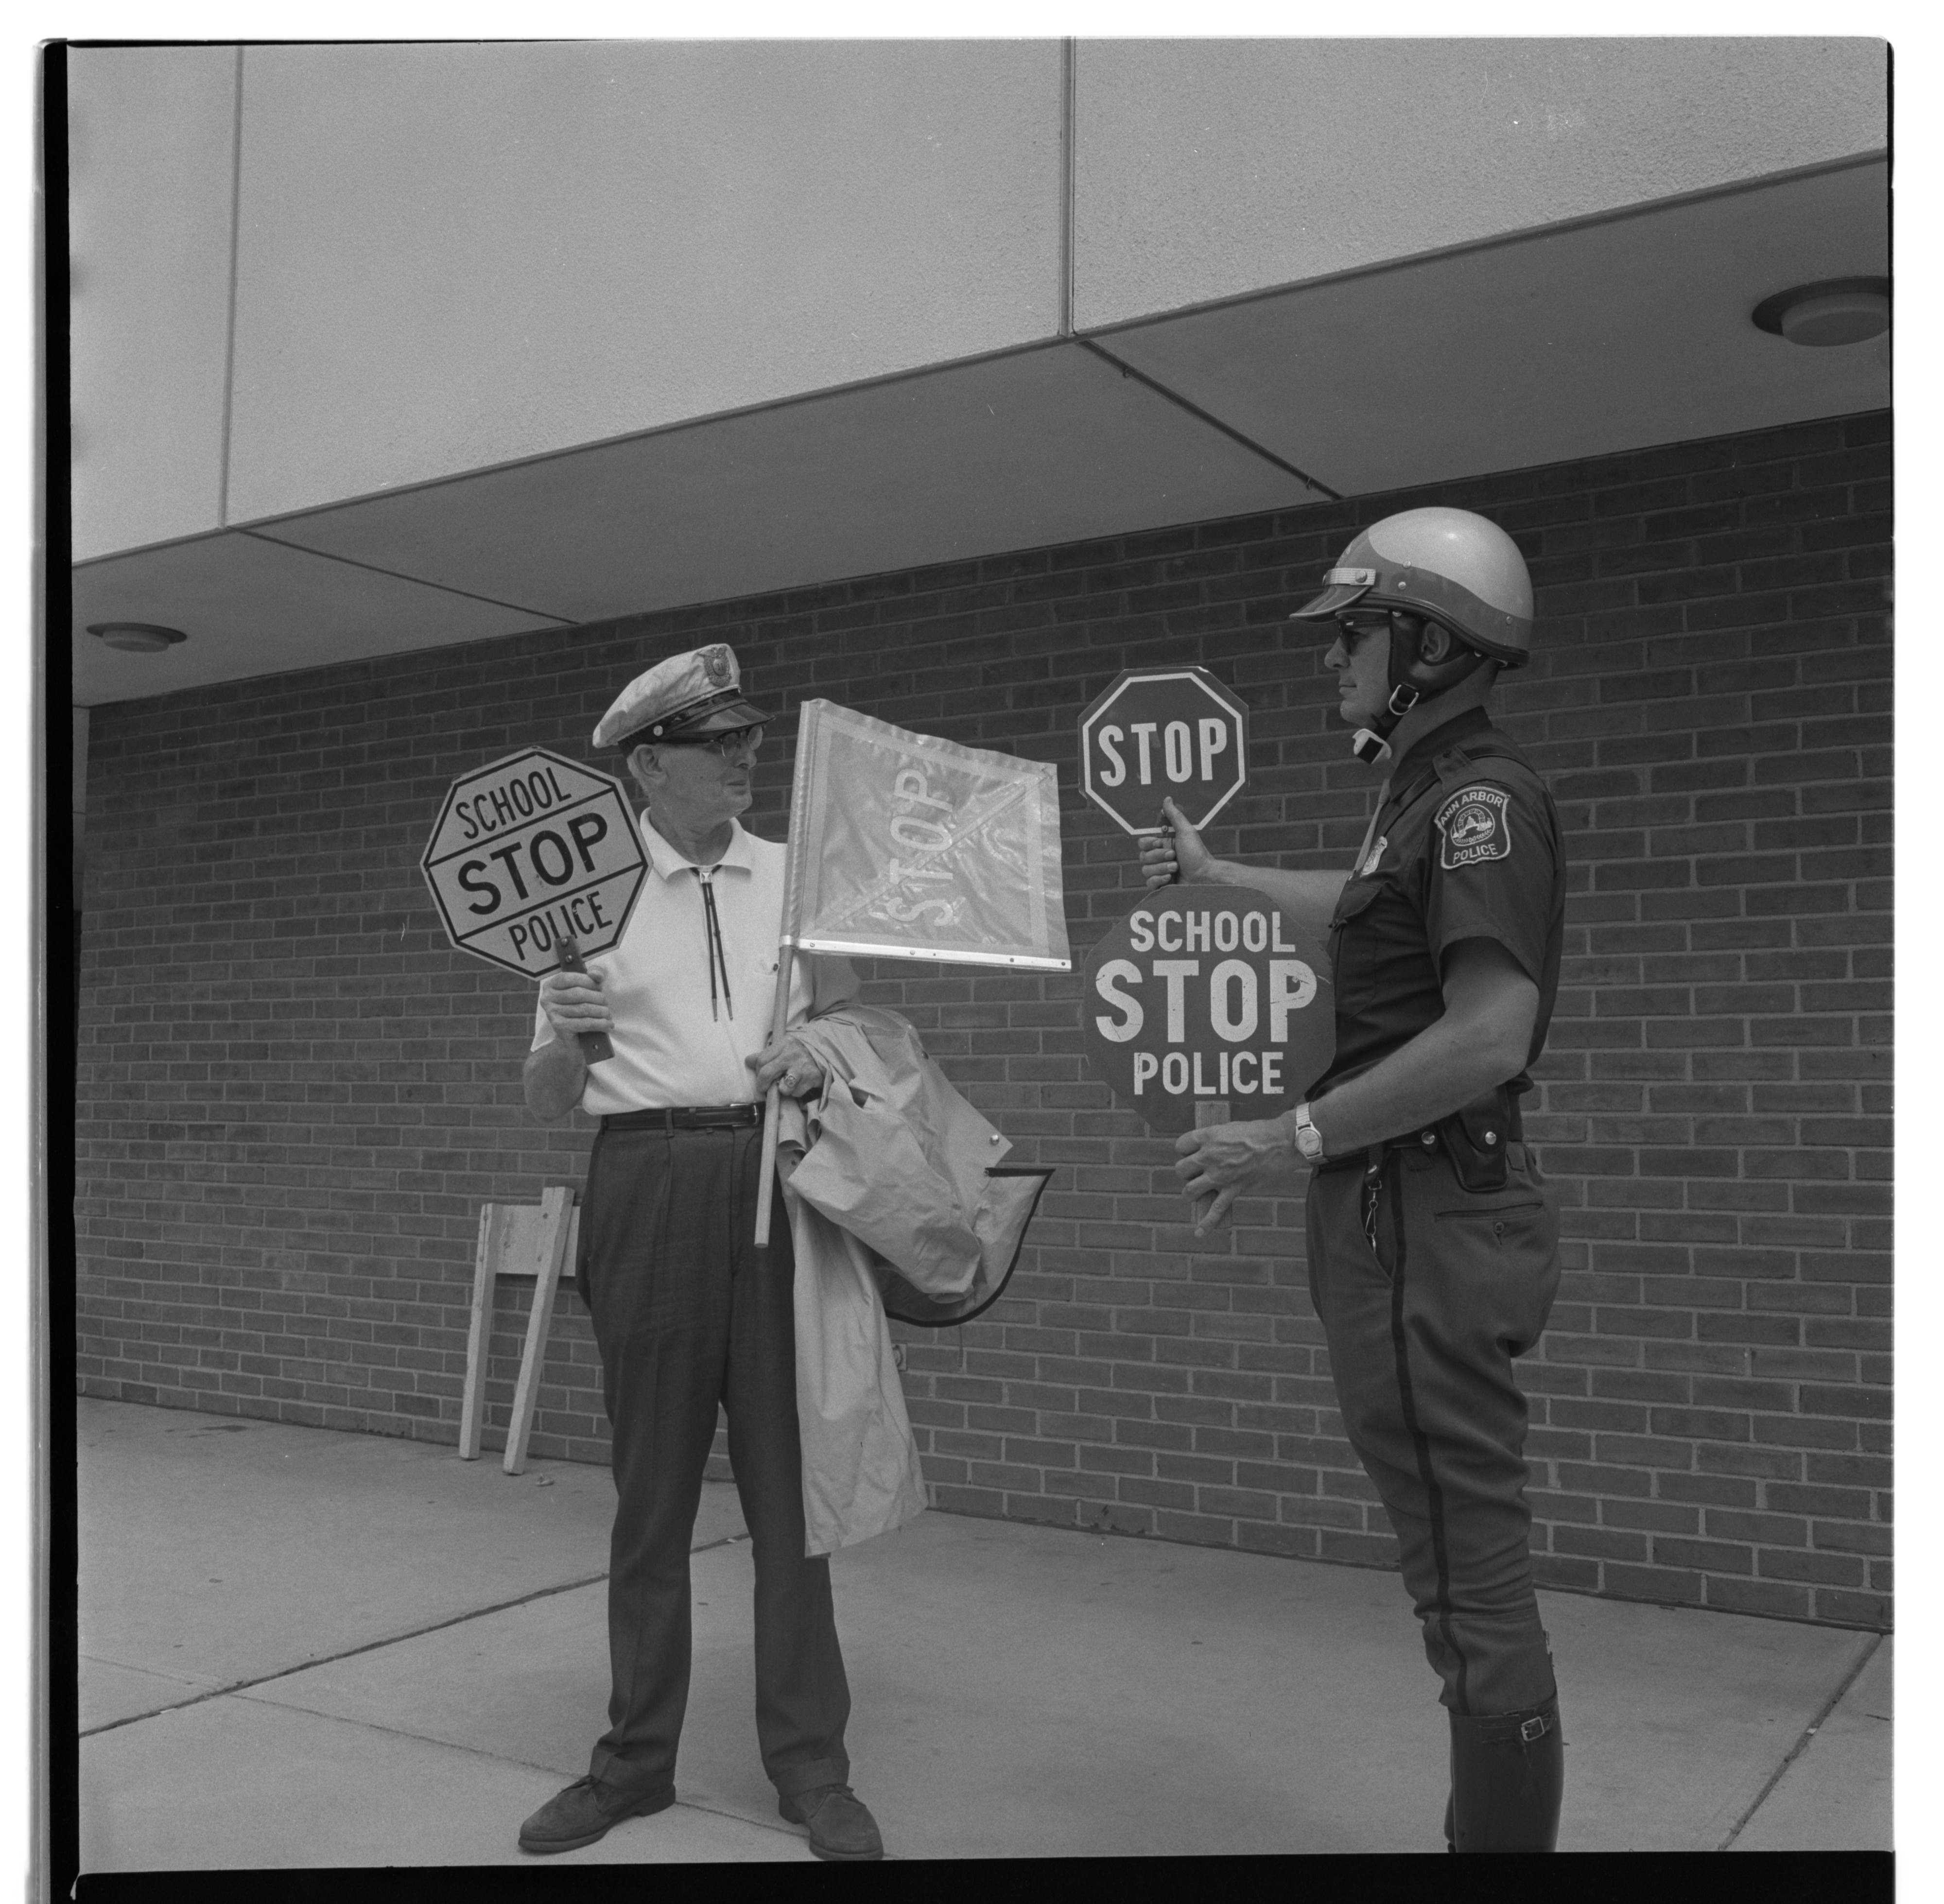 Ann Arbor Police and Crossing Guards Get Read For School Year, August 1966 image